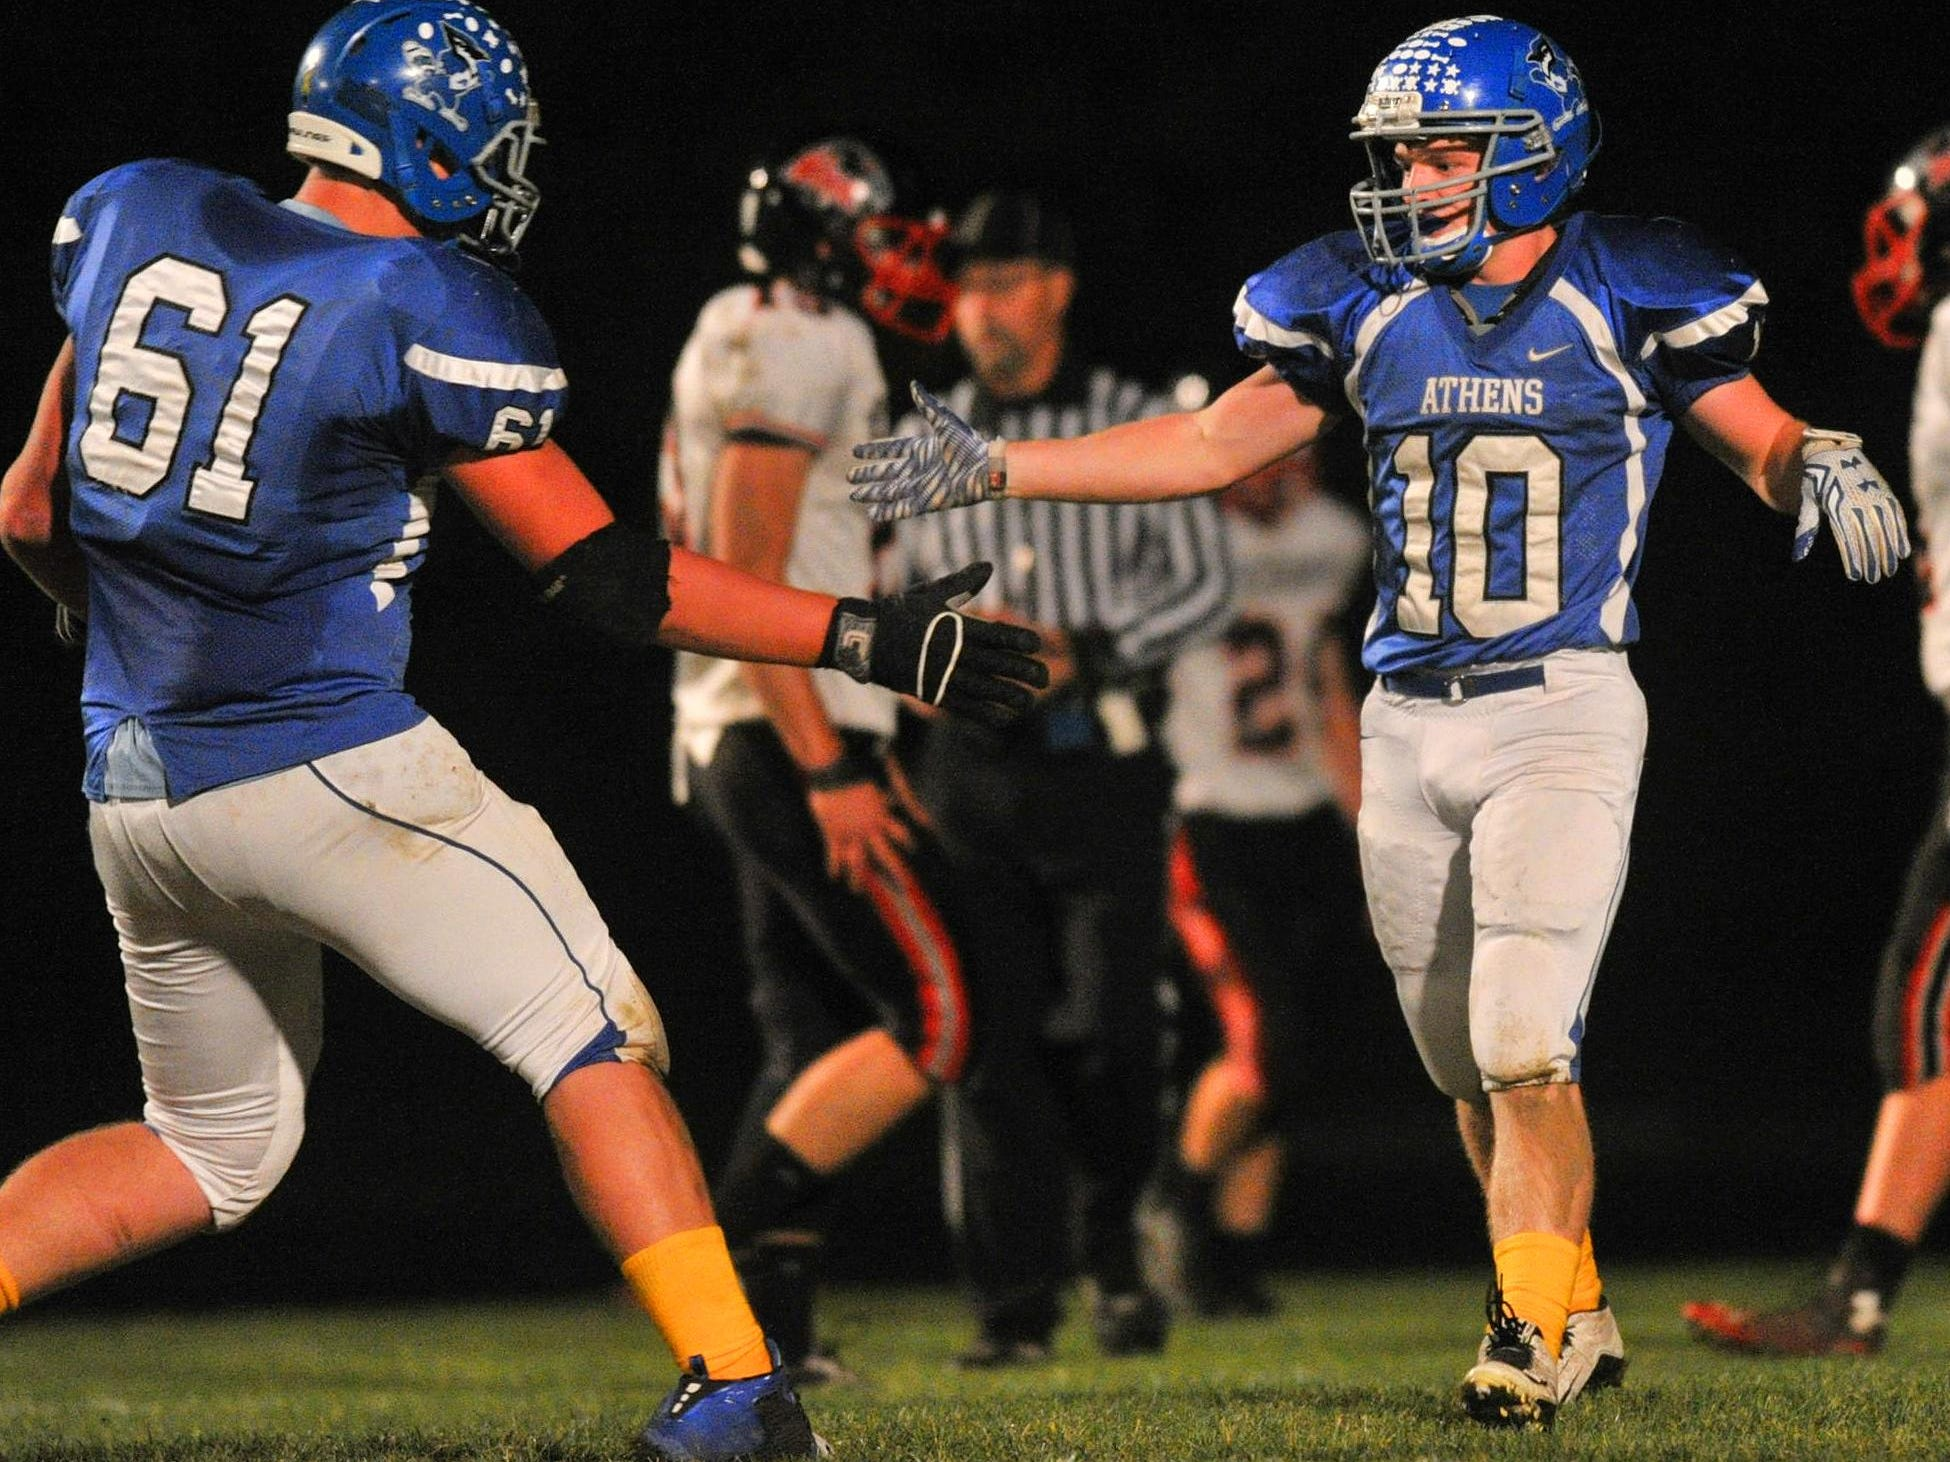 Athens' Jake Stange(10), right, receives a highfive for a run touchdown he made during Friday night's Cloverwood Conference boys football matchup between Owen-Withee and Athens at Athens High School football field